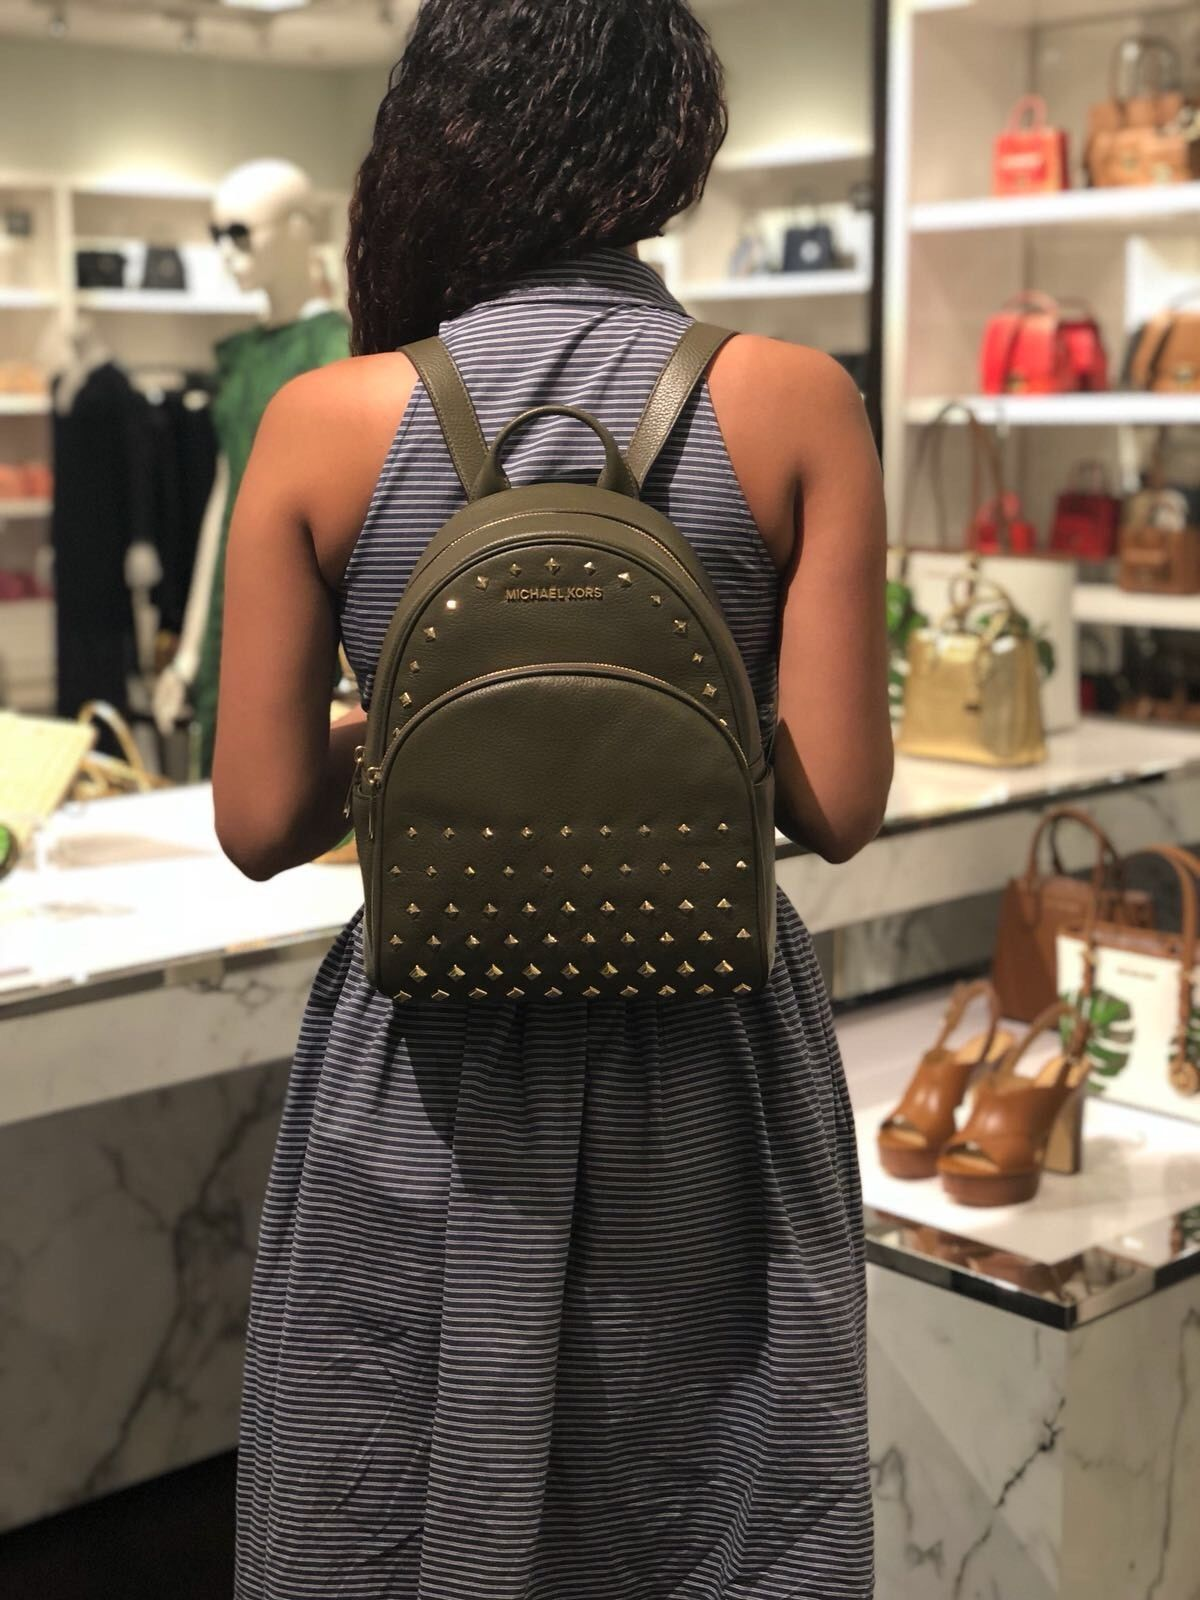 9493dbf49f5a40 S l1600. S l1600. Previous. NWT MICHAEL KORS ABBEY MEDIUM STUDDED BACKPACK  LEATHER OLIVE. NWT MICHAEL KORS ...